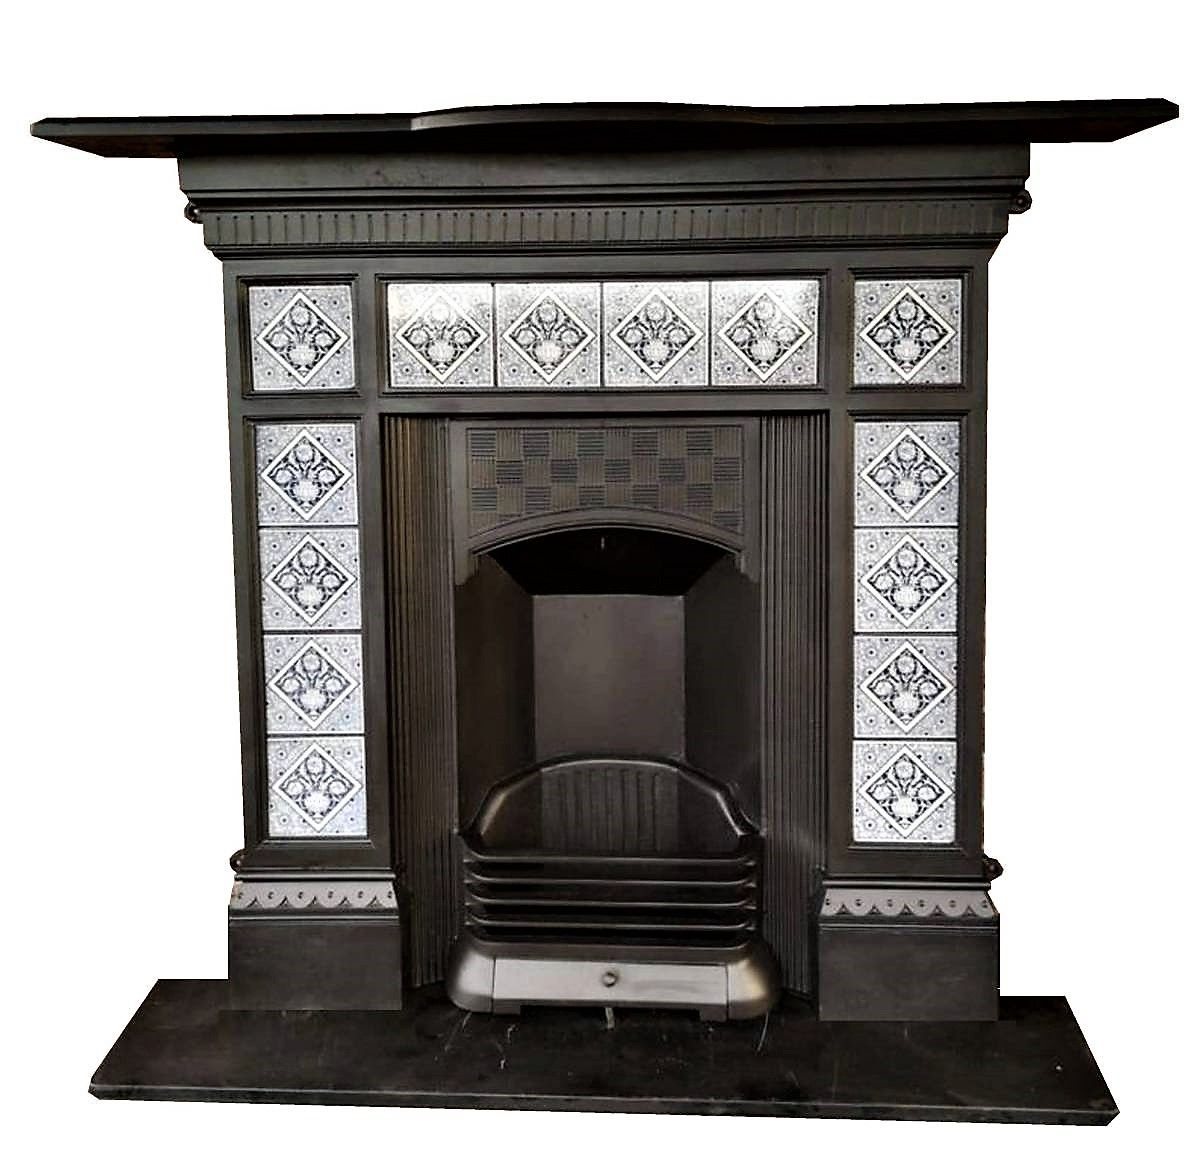 Arts And Craft Edwardian Fireplace With Minton Tiles Artsandcraft Artsandcraftfireplaces Antique Fireplace Surround Antique Fireplace Edwardian Fireplace